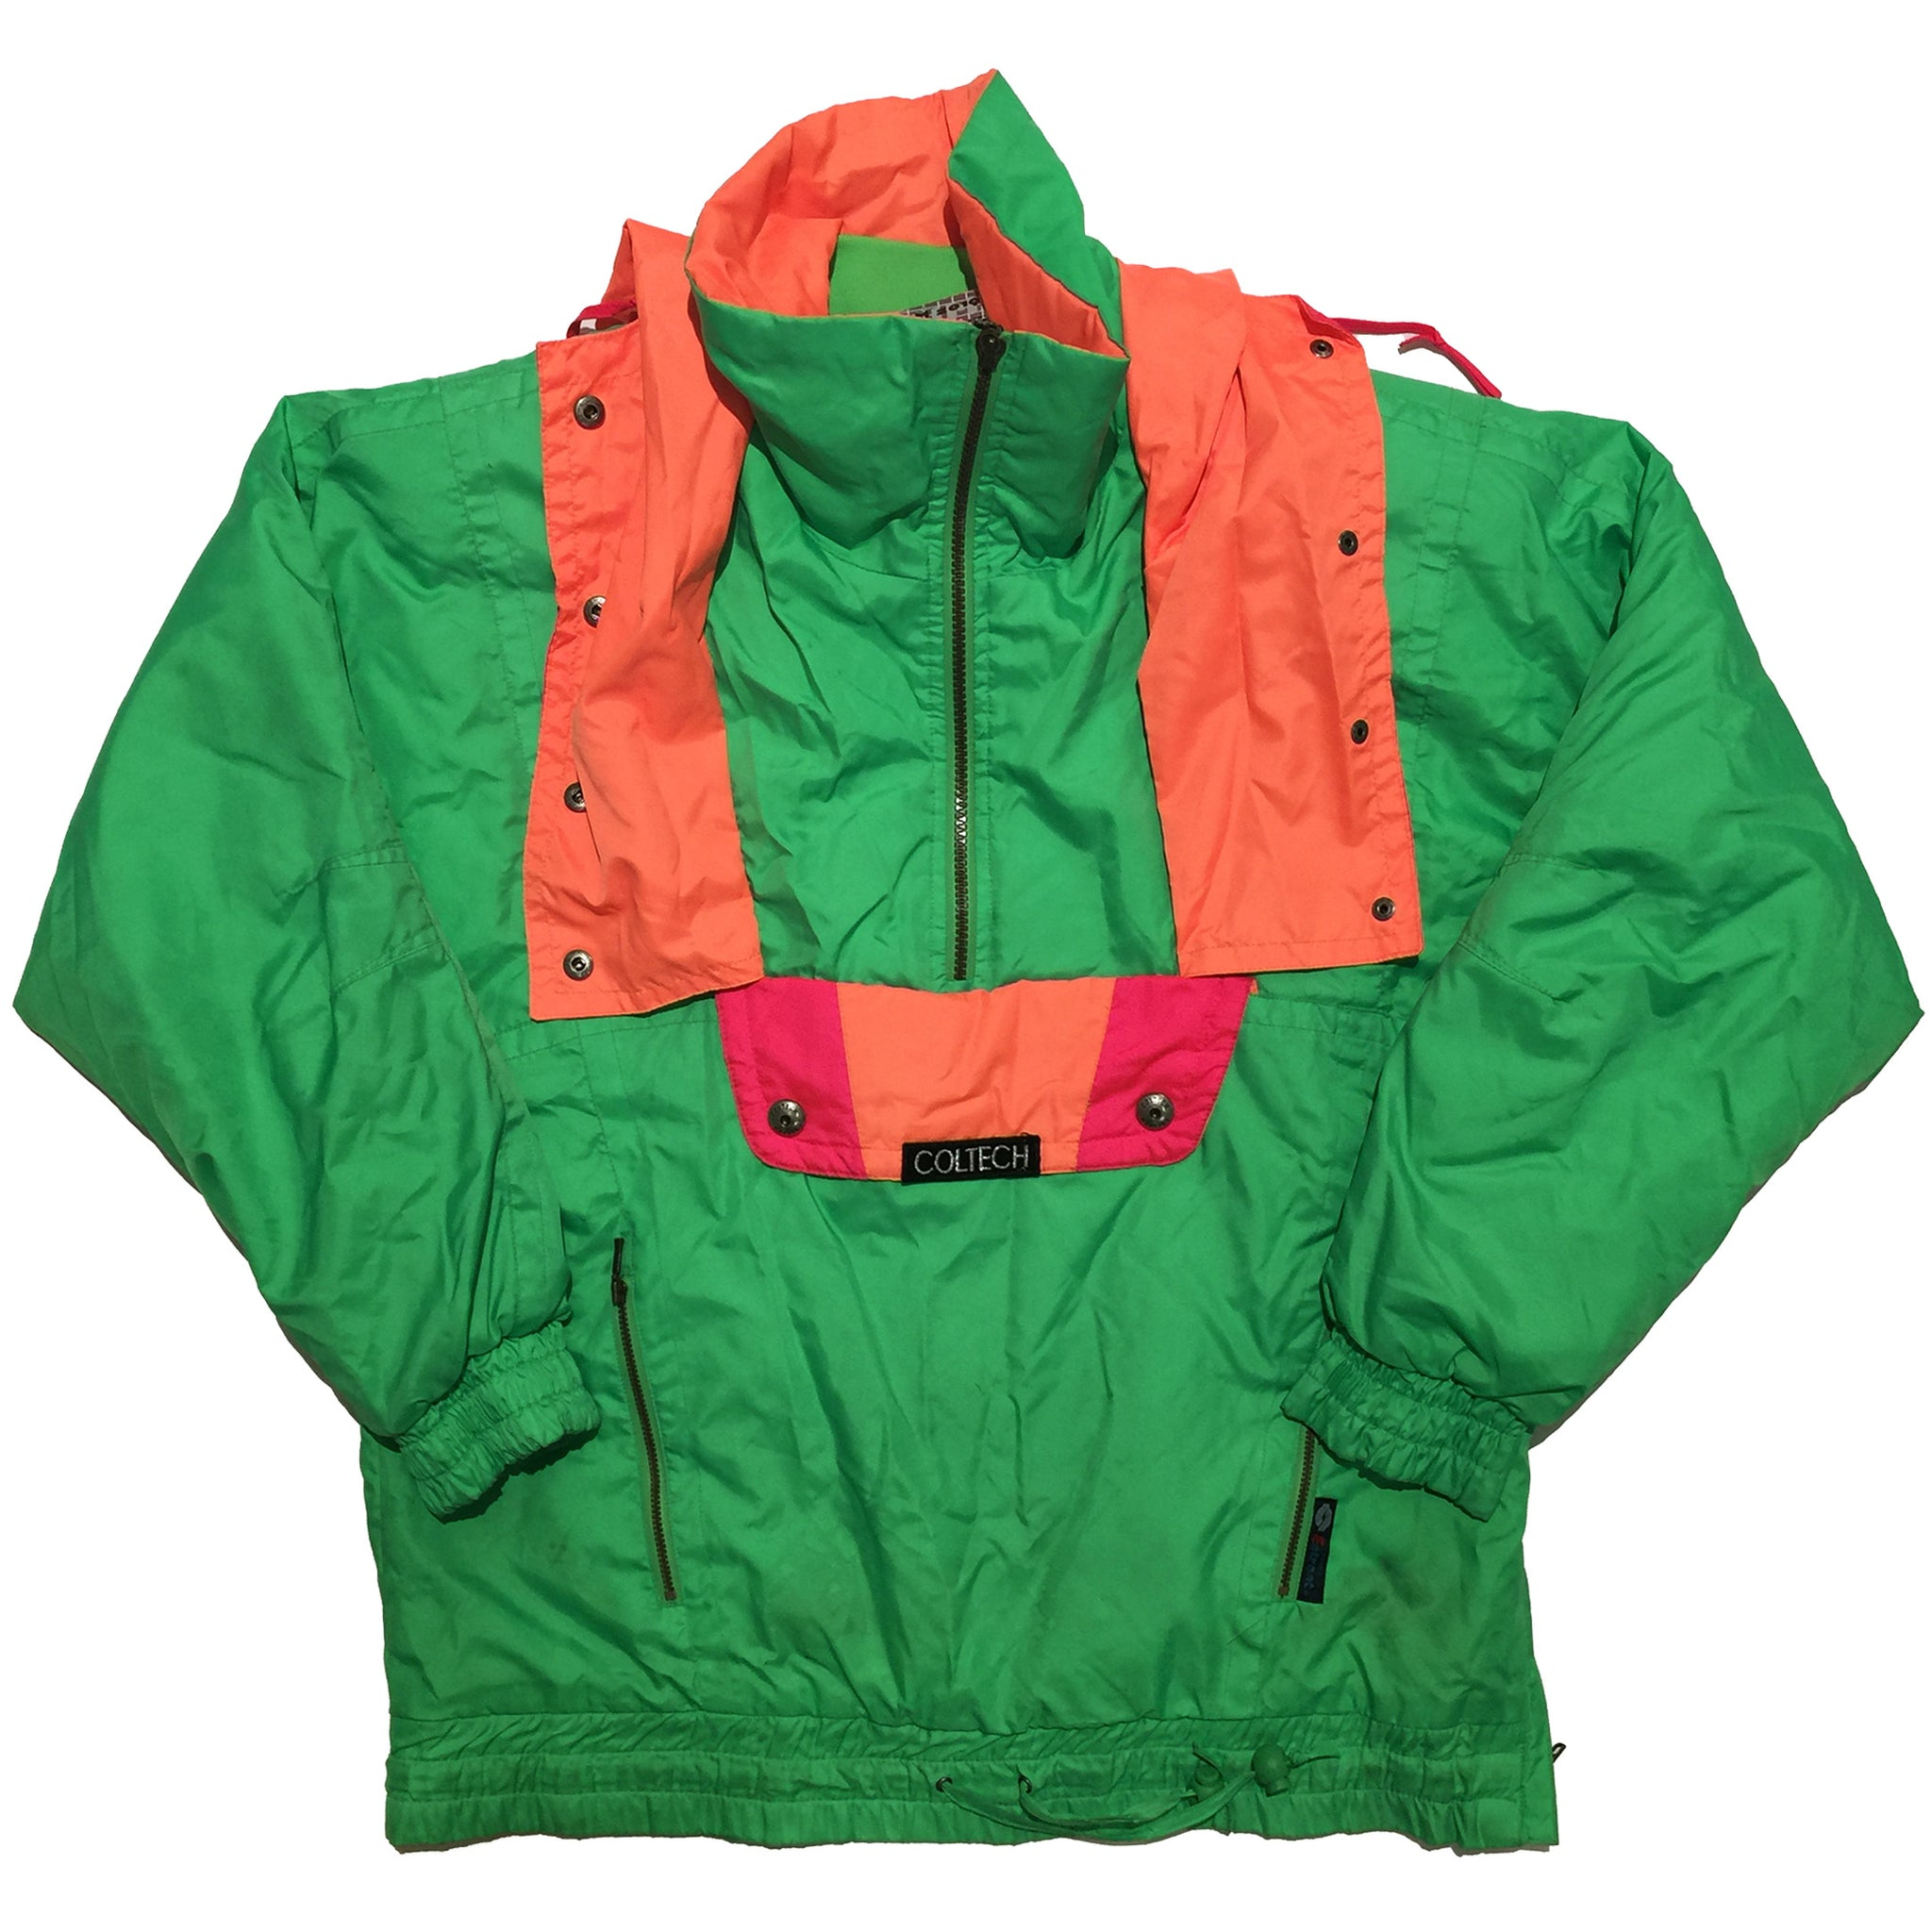 Coltech Green, Orange and Red Accent Half Zip Jacket